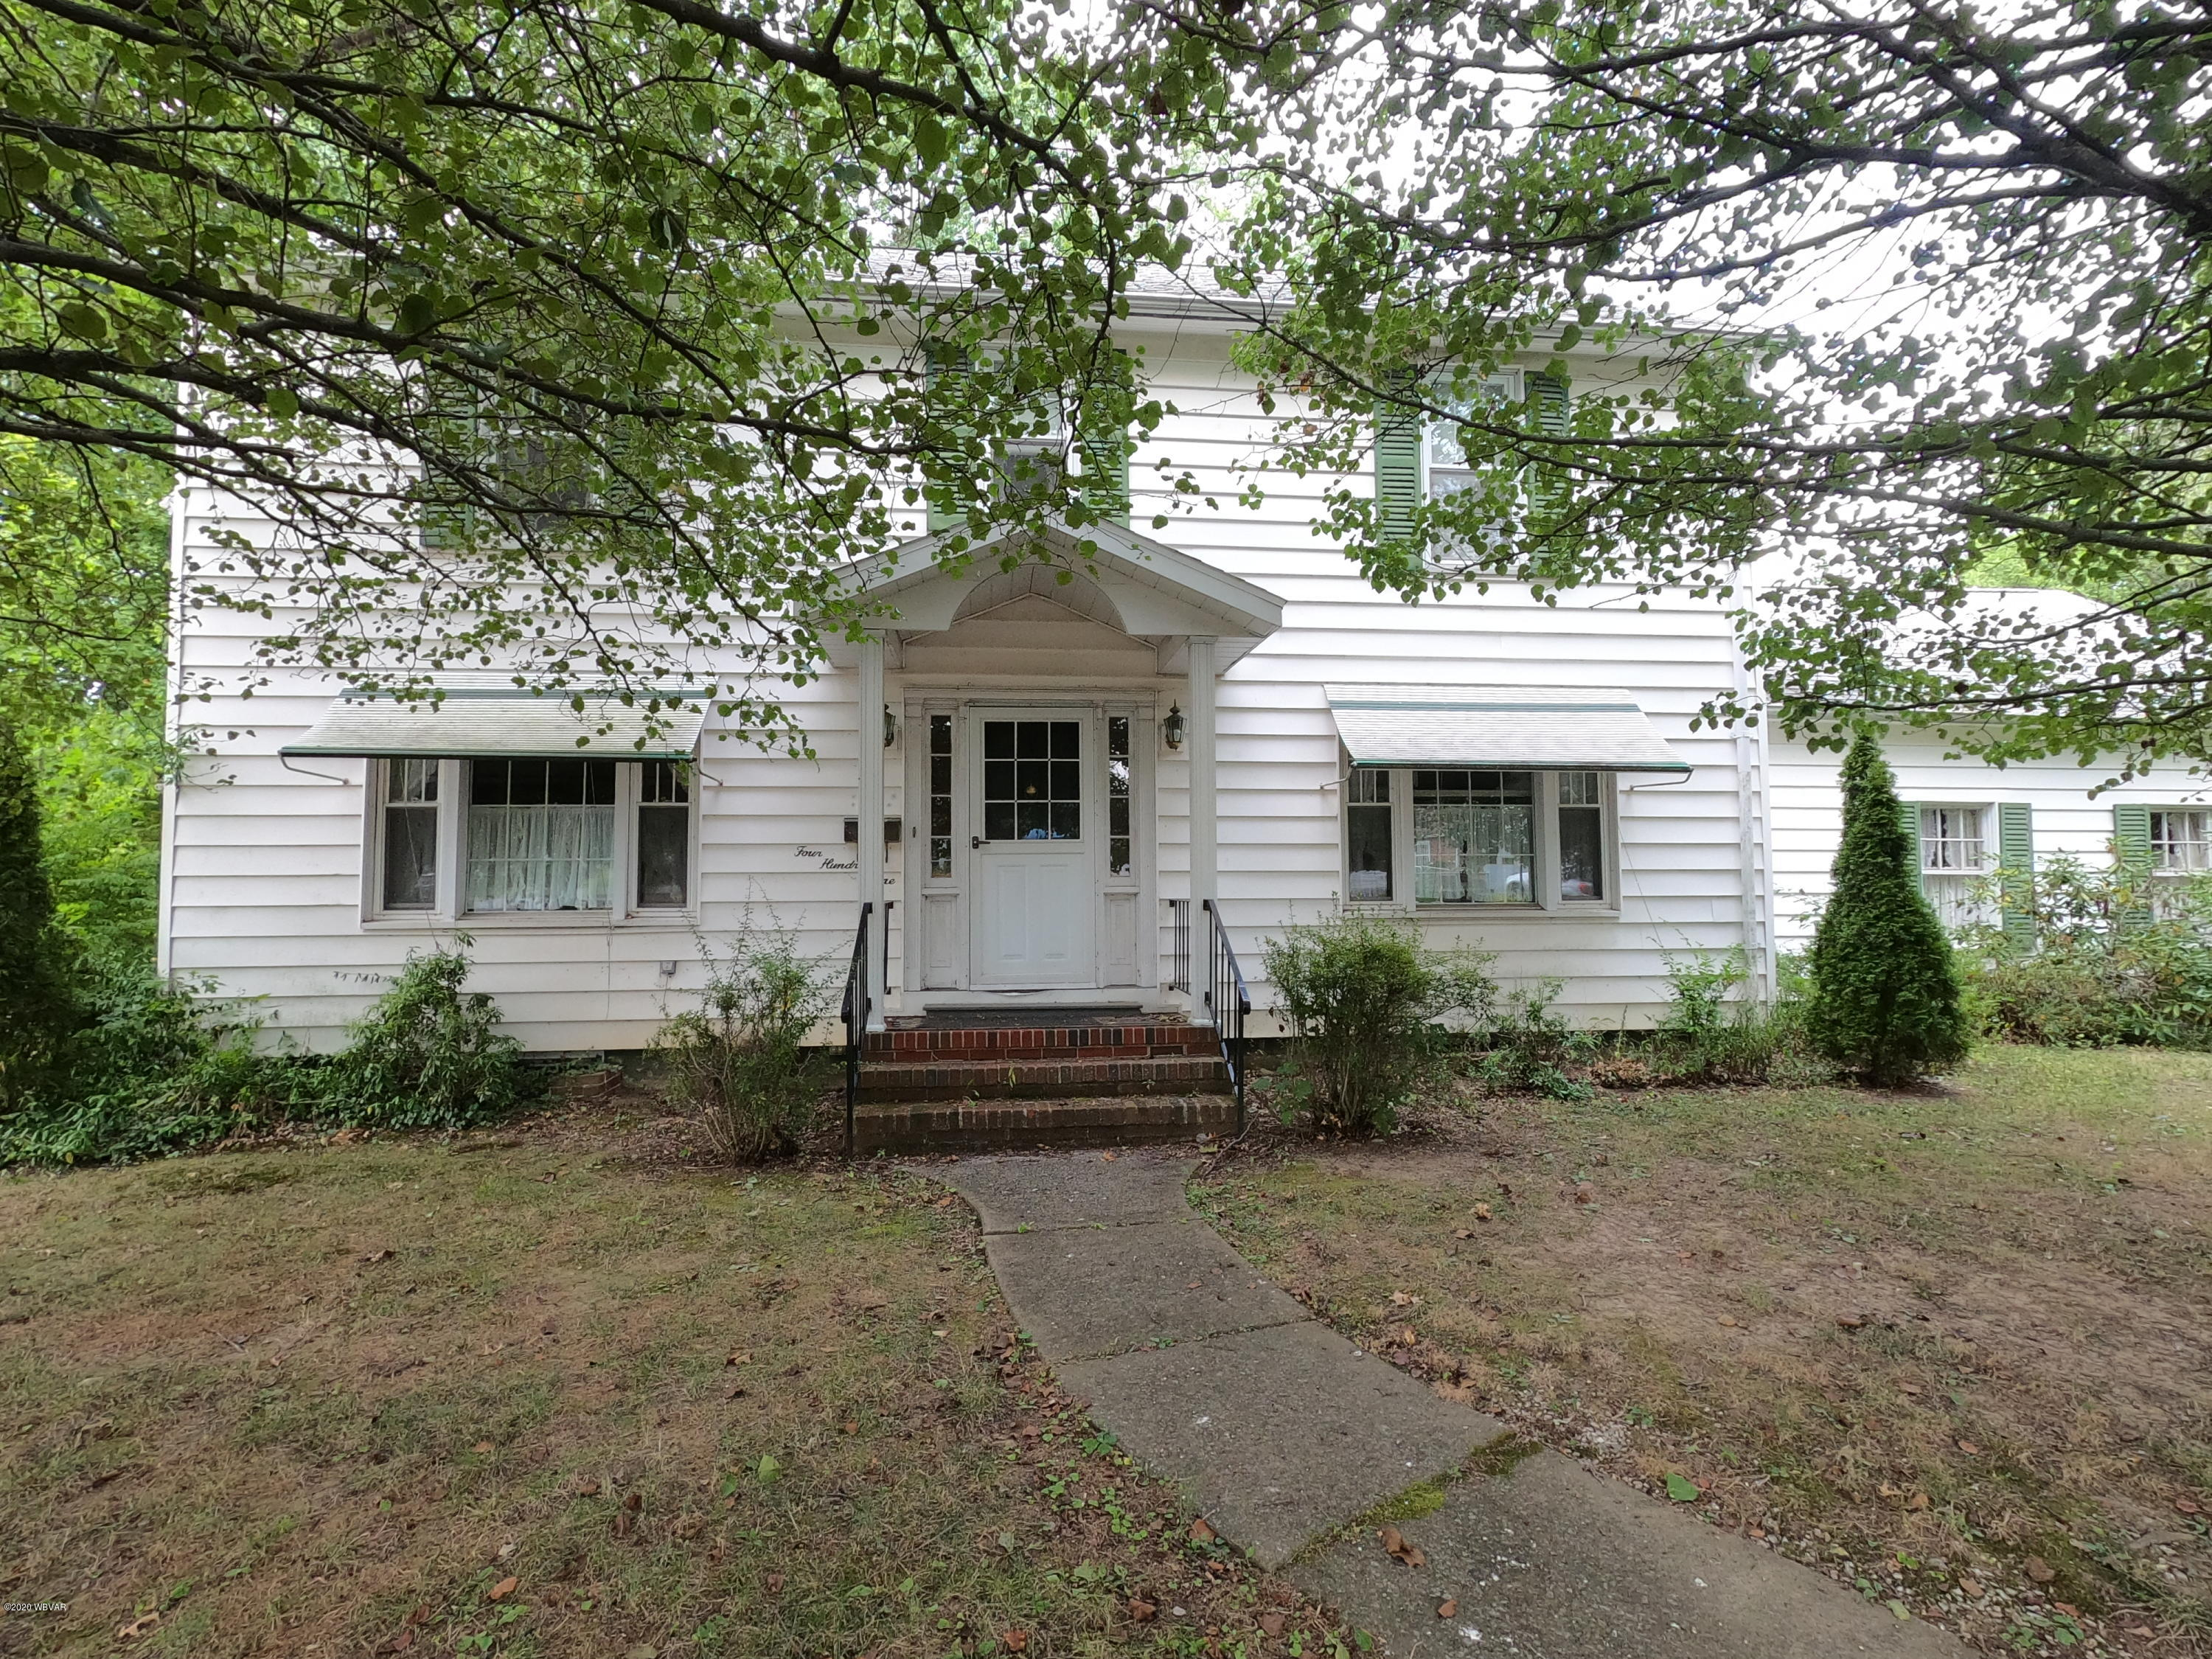 401 BIRCH STREET, Lock Haven, PA 17745, 3 Bedrooms Bedrooms, ,2 BathroomsBathrooms,Residential,For sale,BIRCH,WB-90962